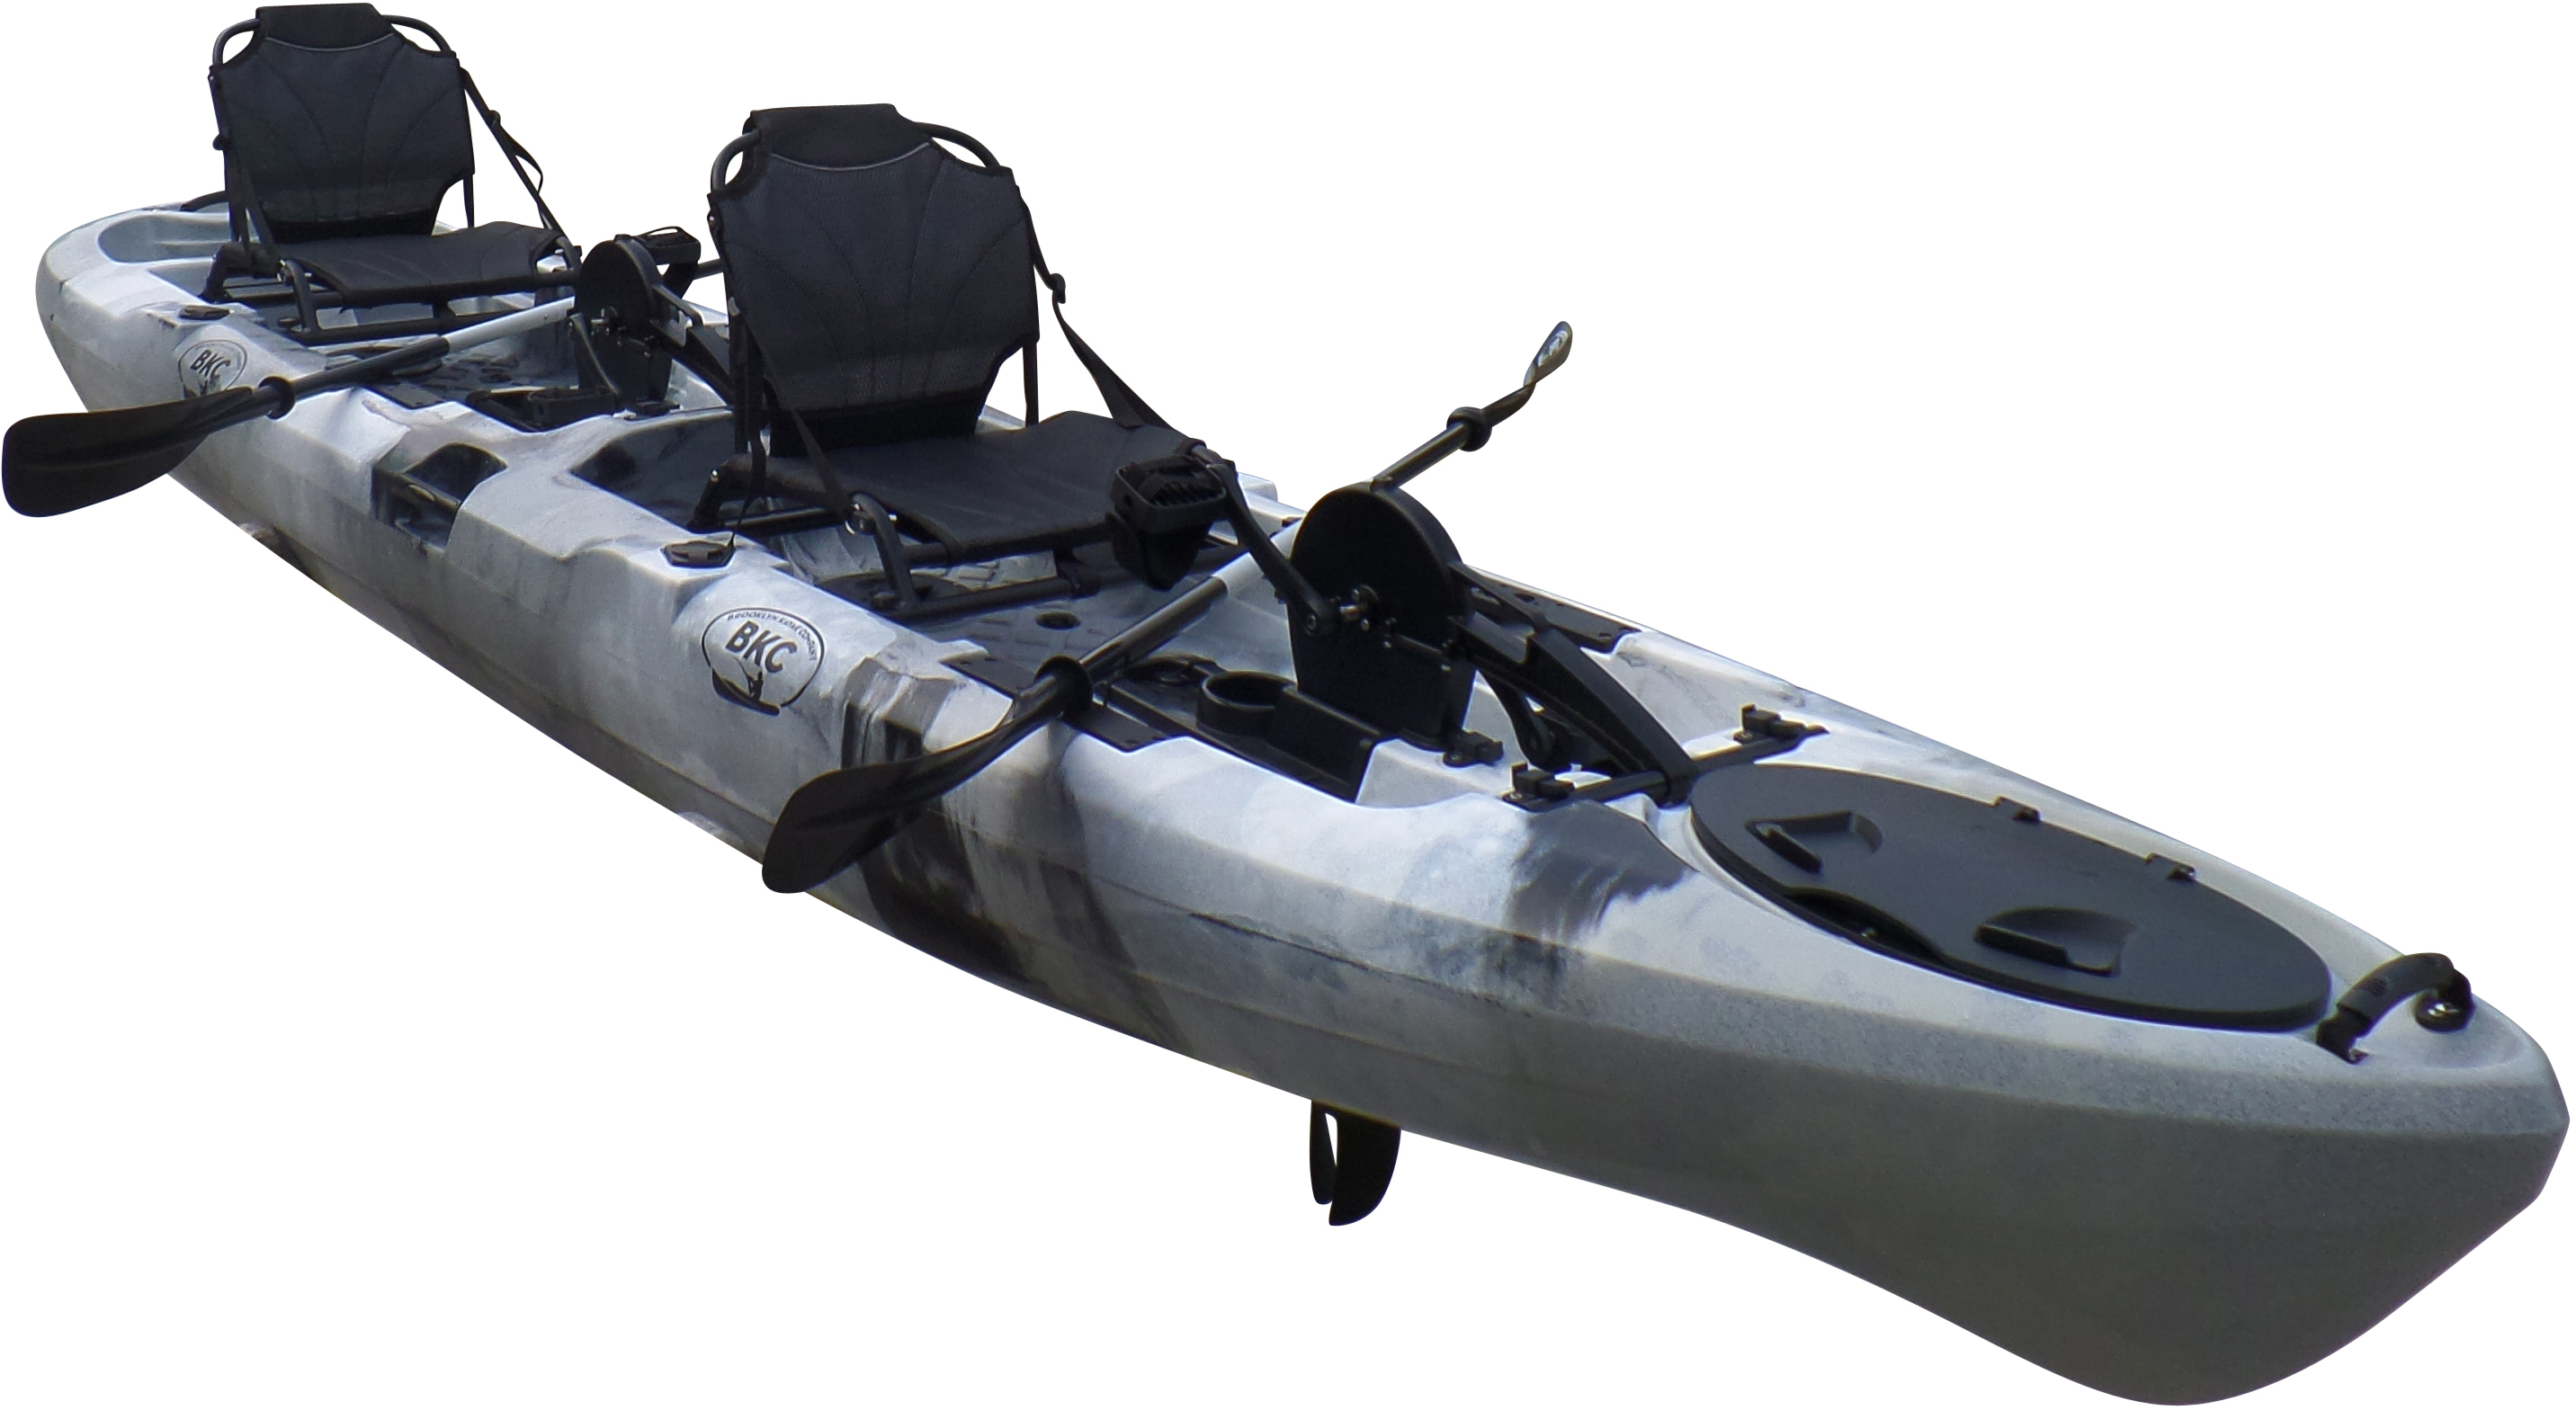 BKC UH-PK14 14 foot Sit On Top Tandem Fishing Pedal Drive Kayak Upright Seats included by Brooklyn Kayak Company